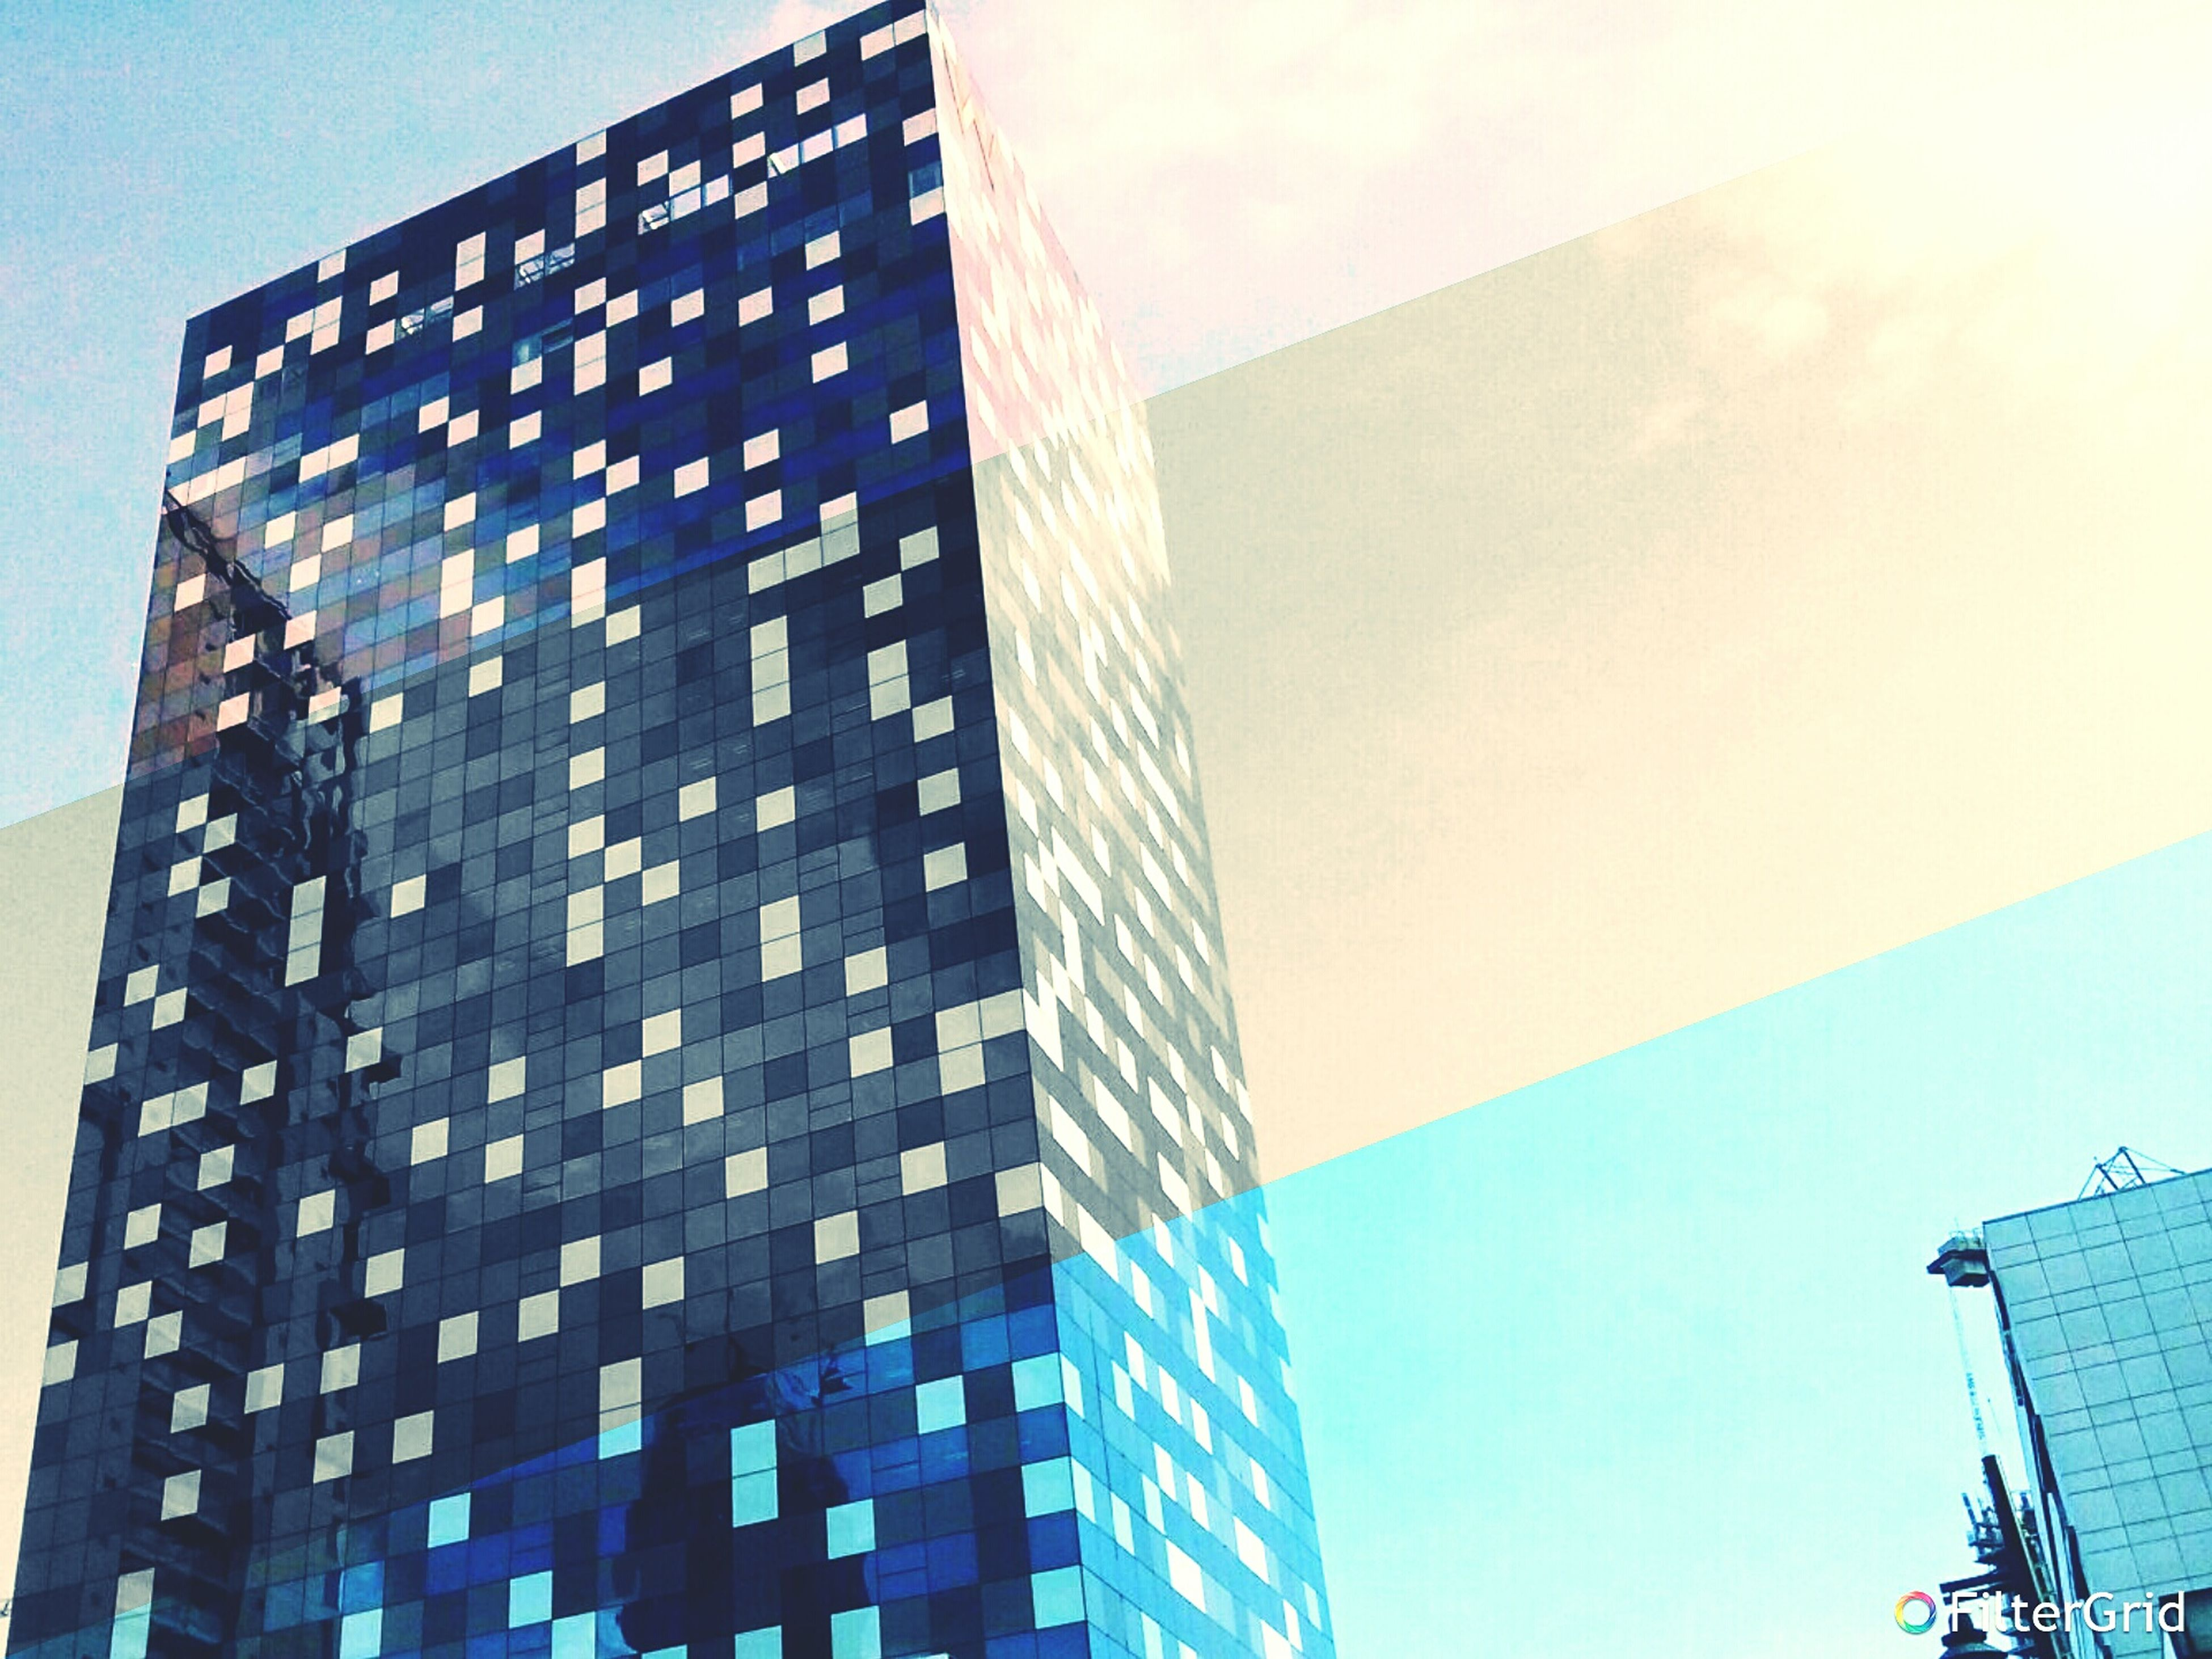 low angle view, architecture, built structure, building exterior, tall - high, skyscraper, modern, office building, city, tower, sky, glass - material, building, development, tall, clear sky, blue, reflection, day, outdoors